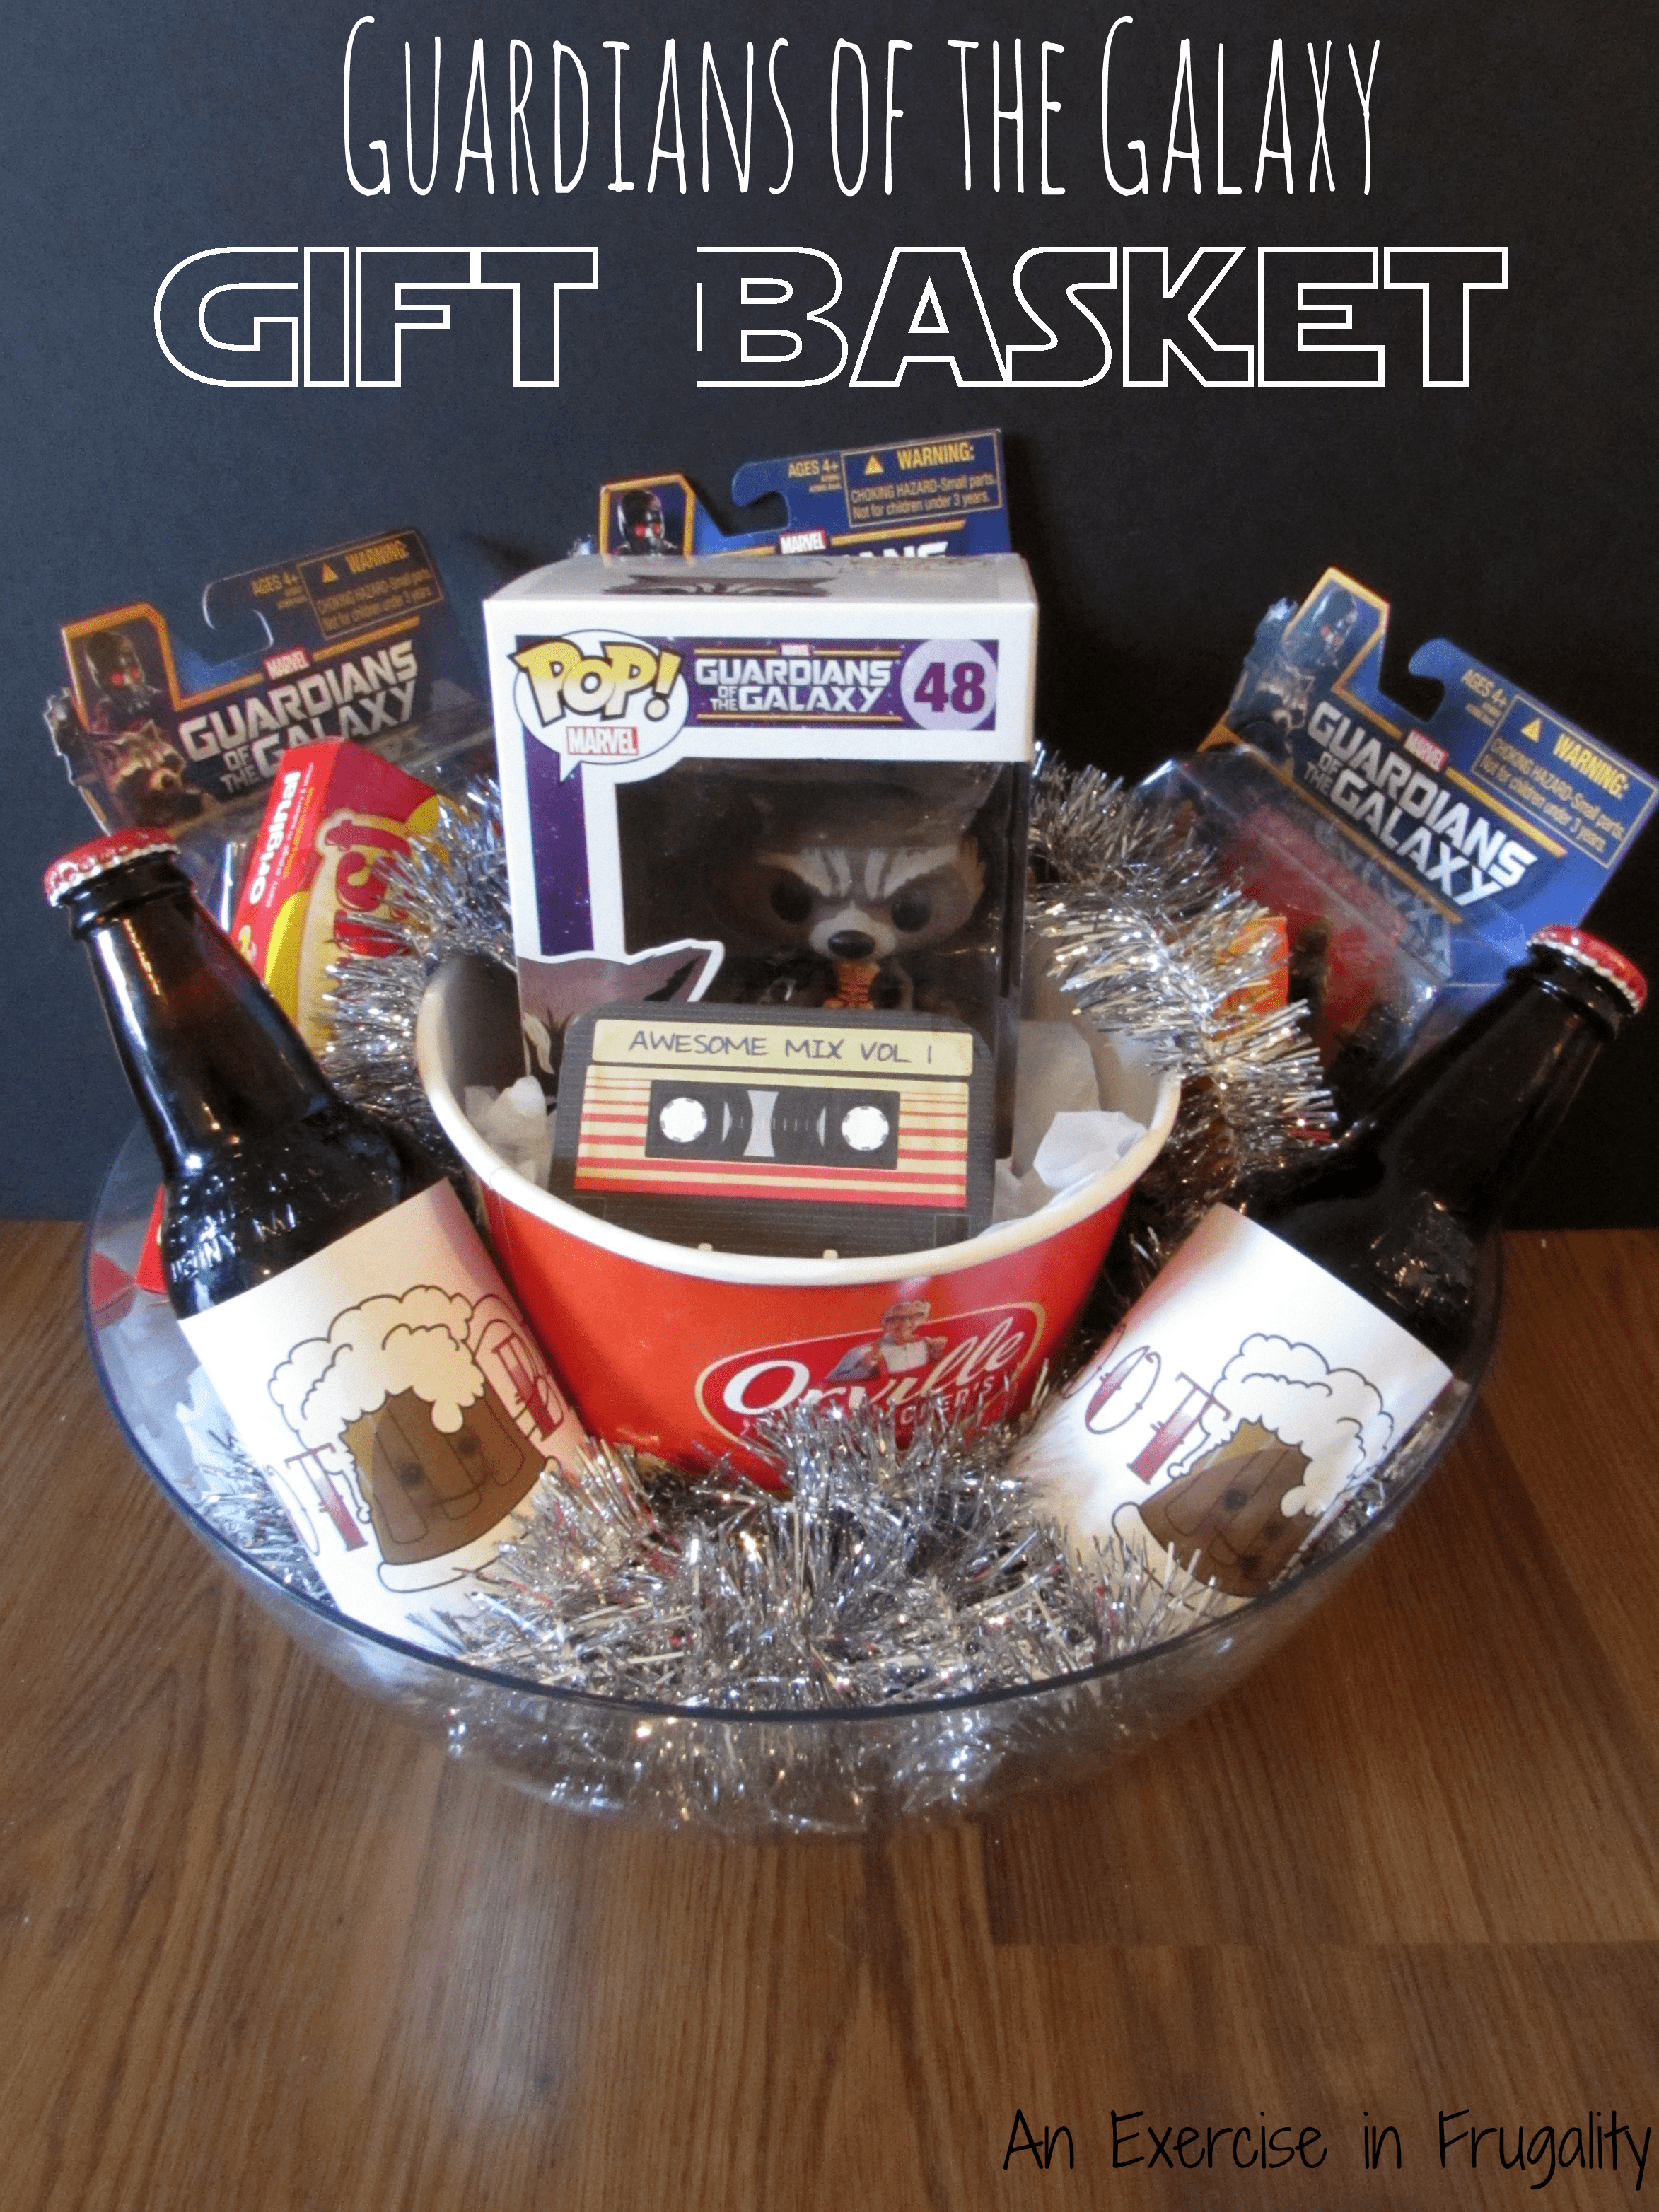 guardians-of-the-galaxy-dvd-gift-basket